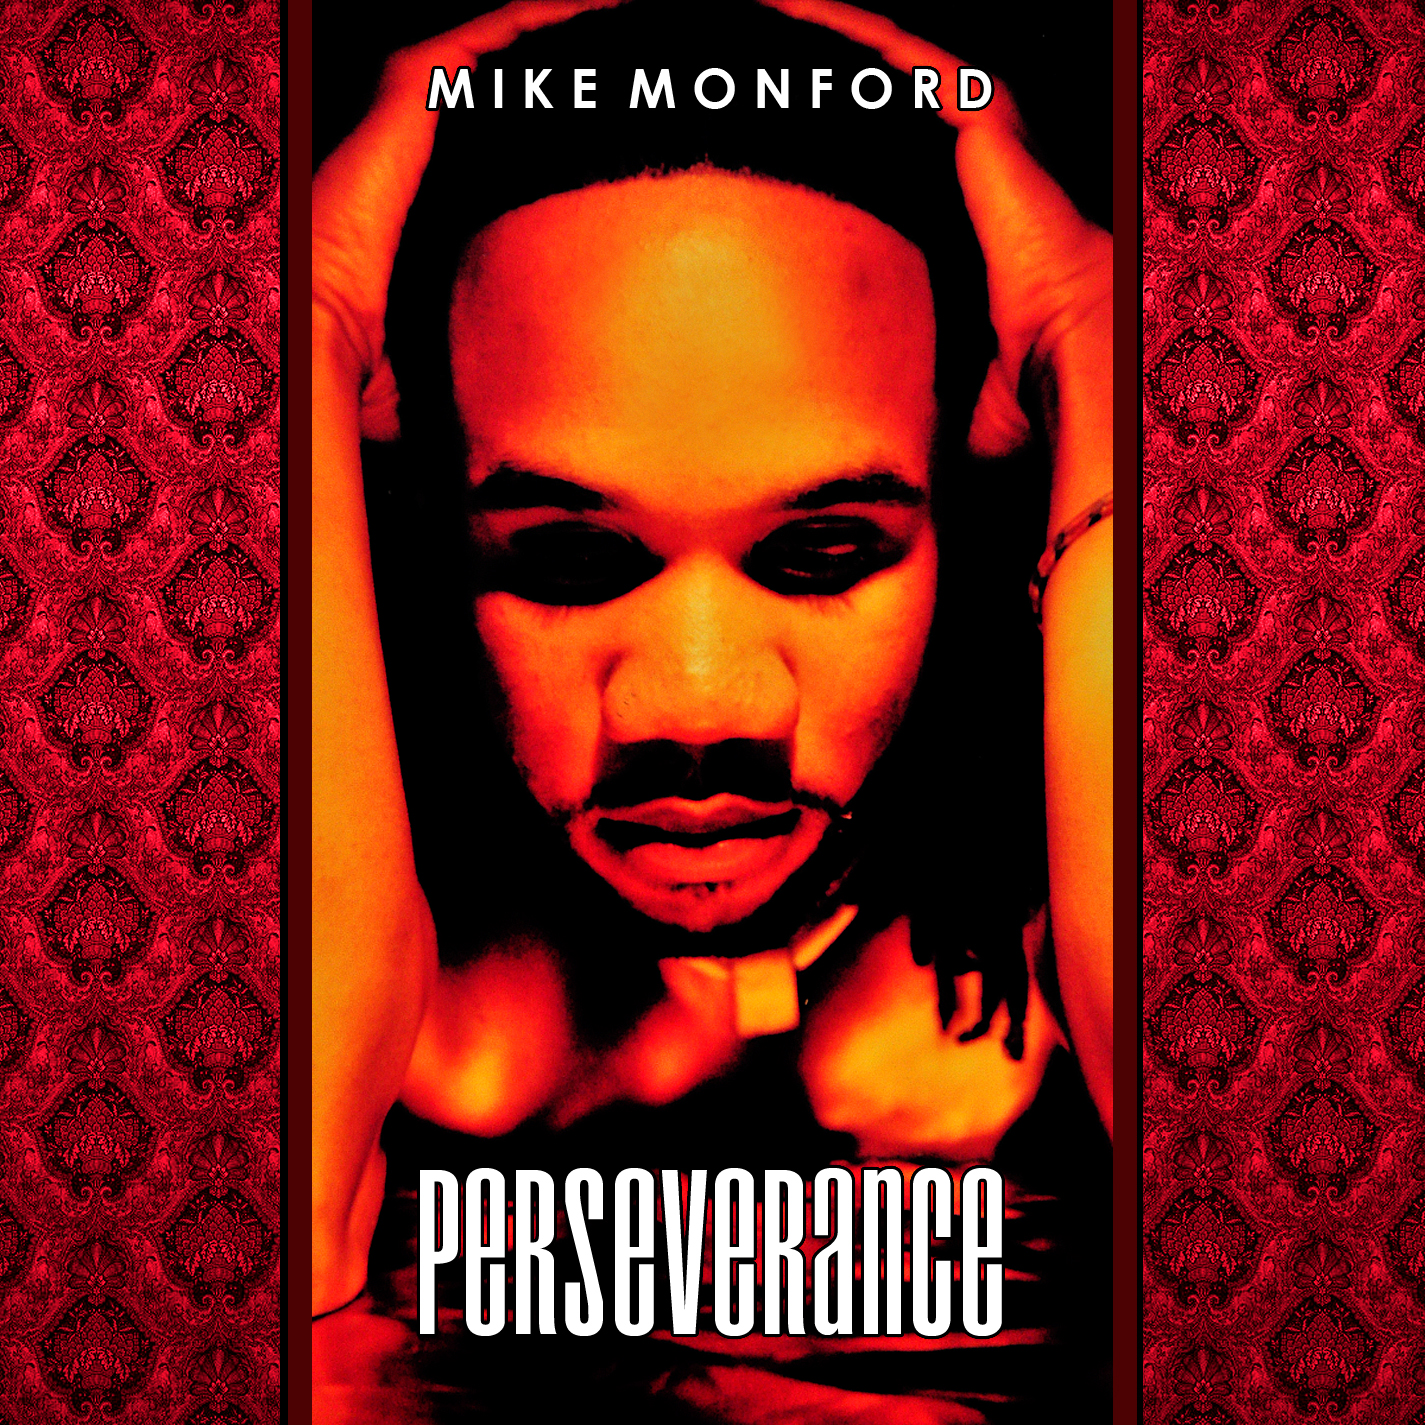 Perseverance_Front_Cover.jpg